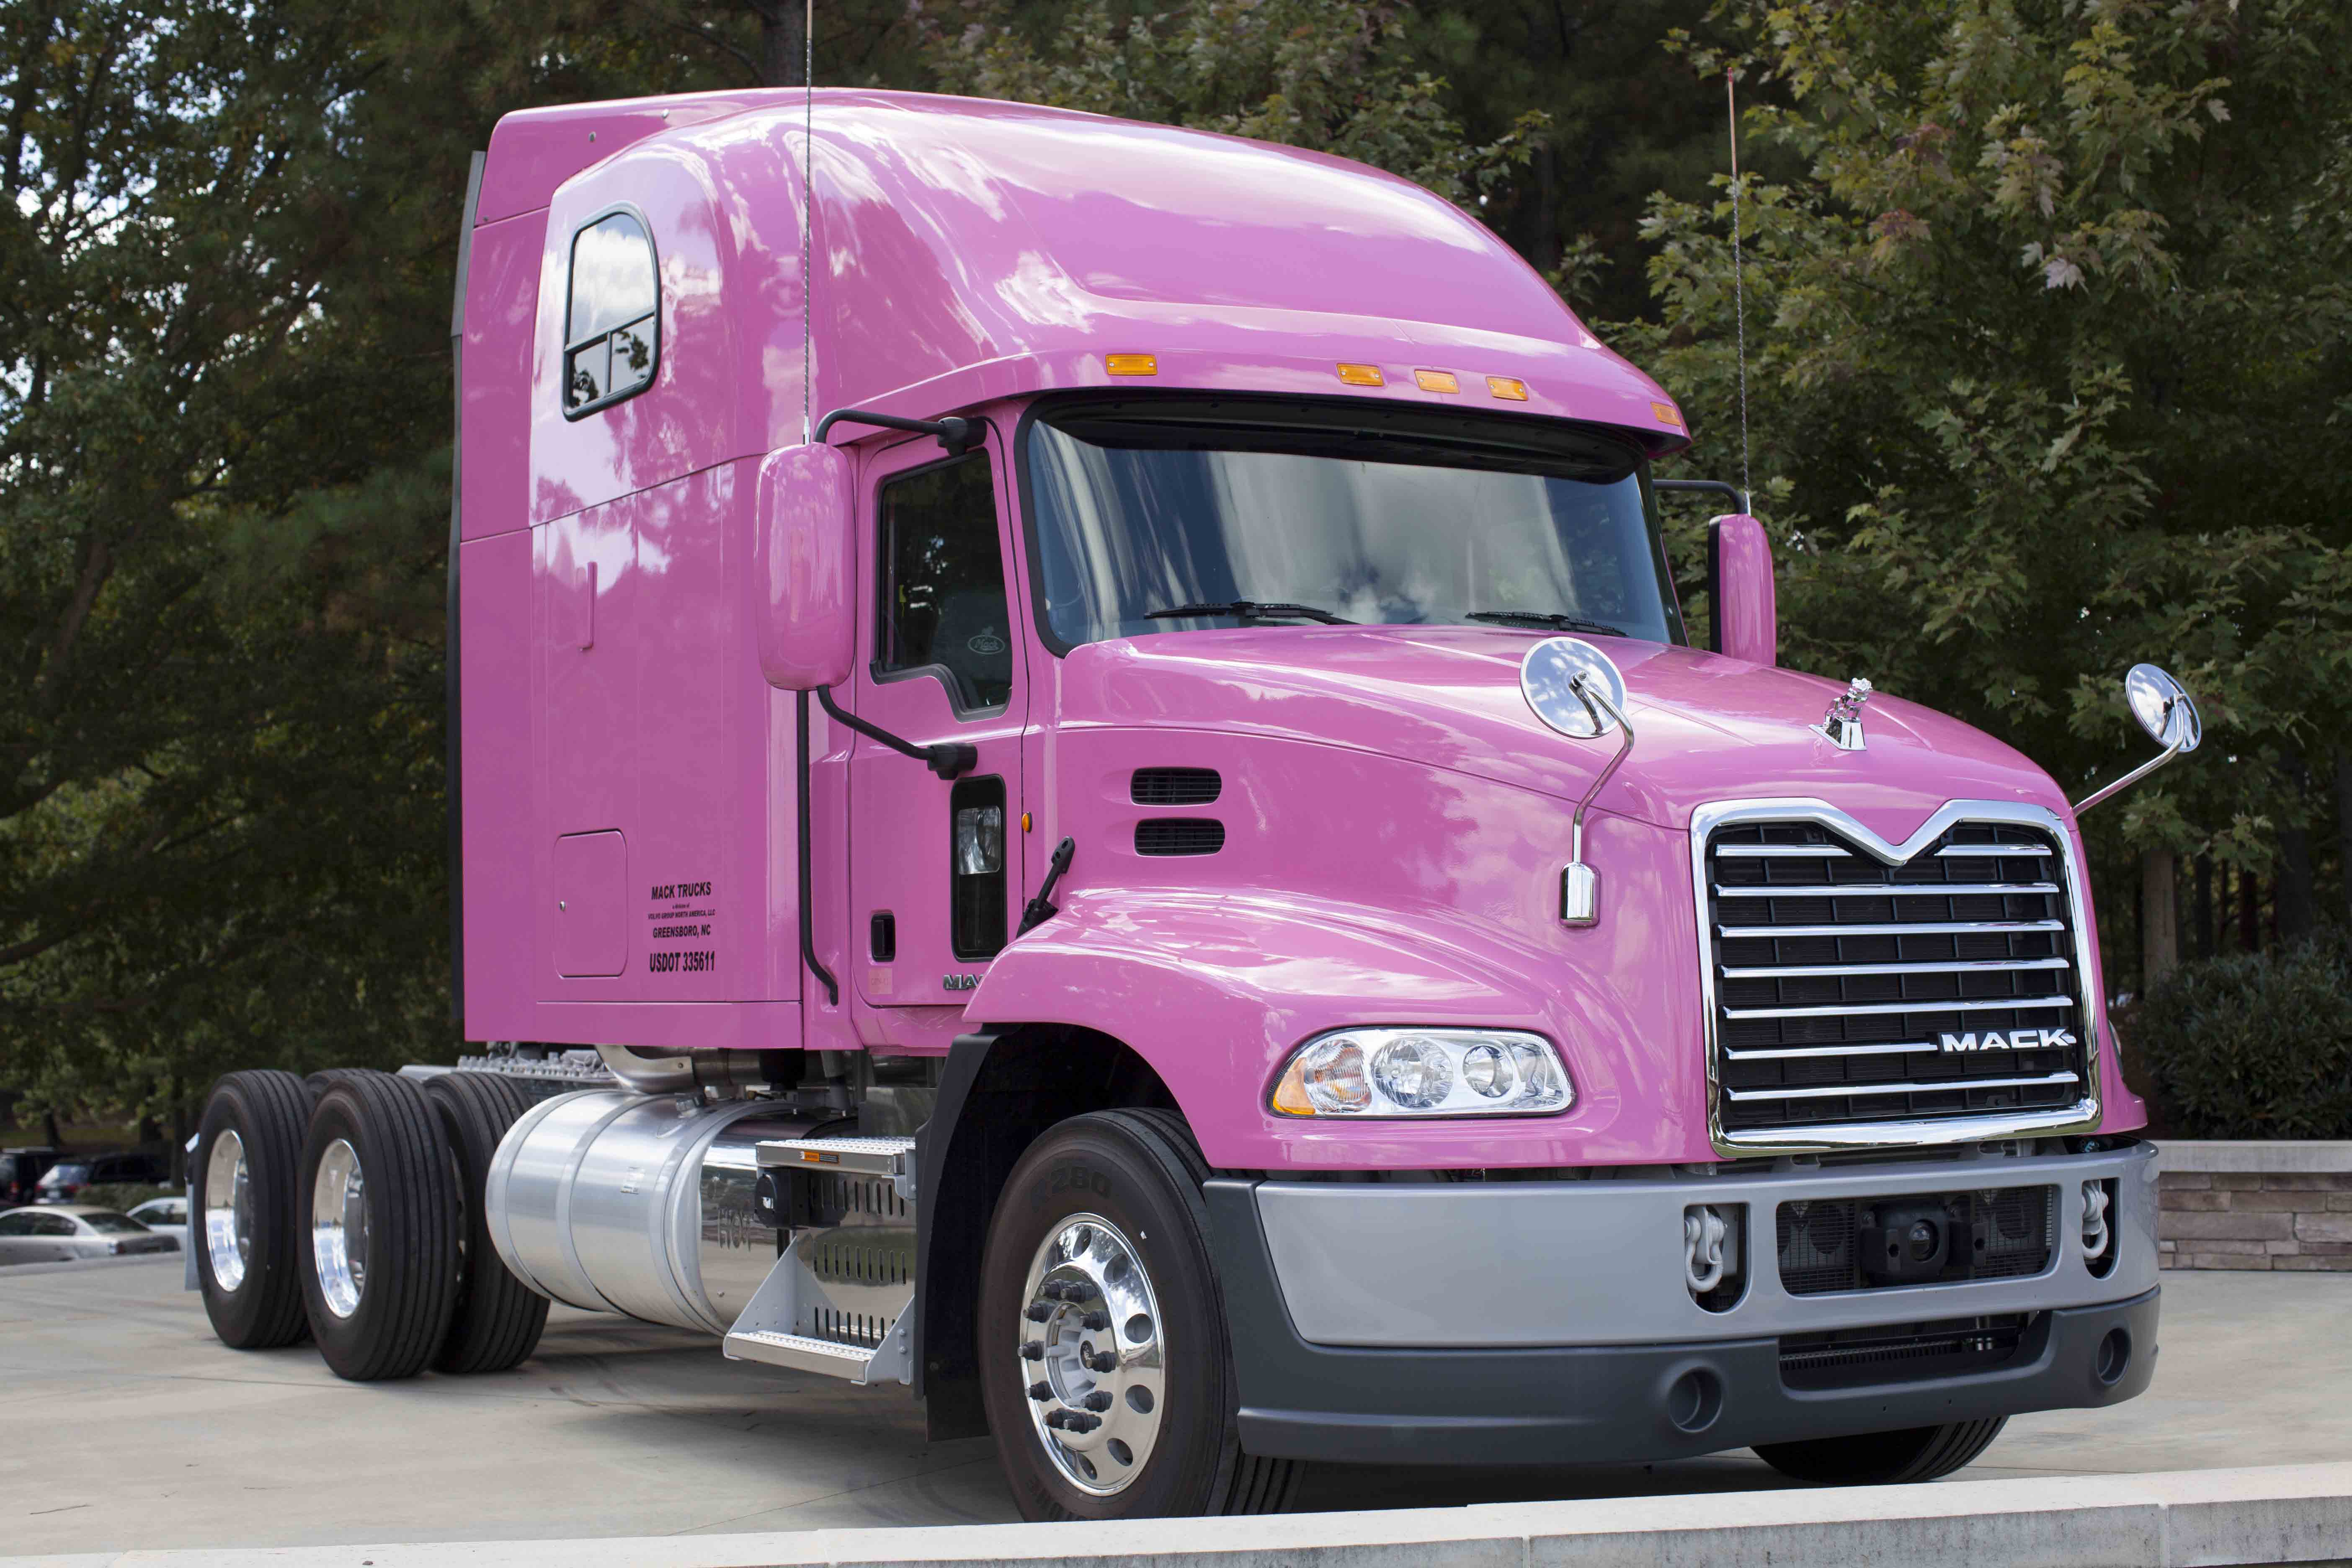 Mack Trucks Showcases Its Support For Breast Cancer Awareness